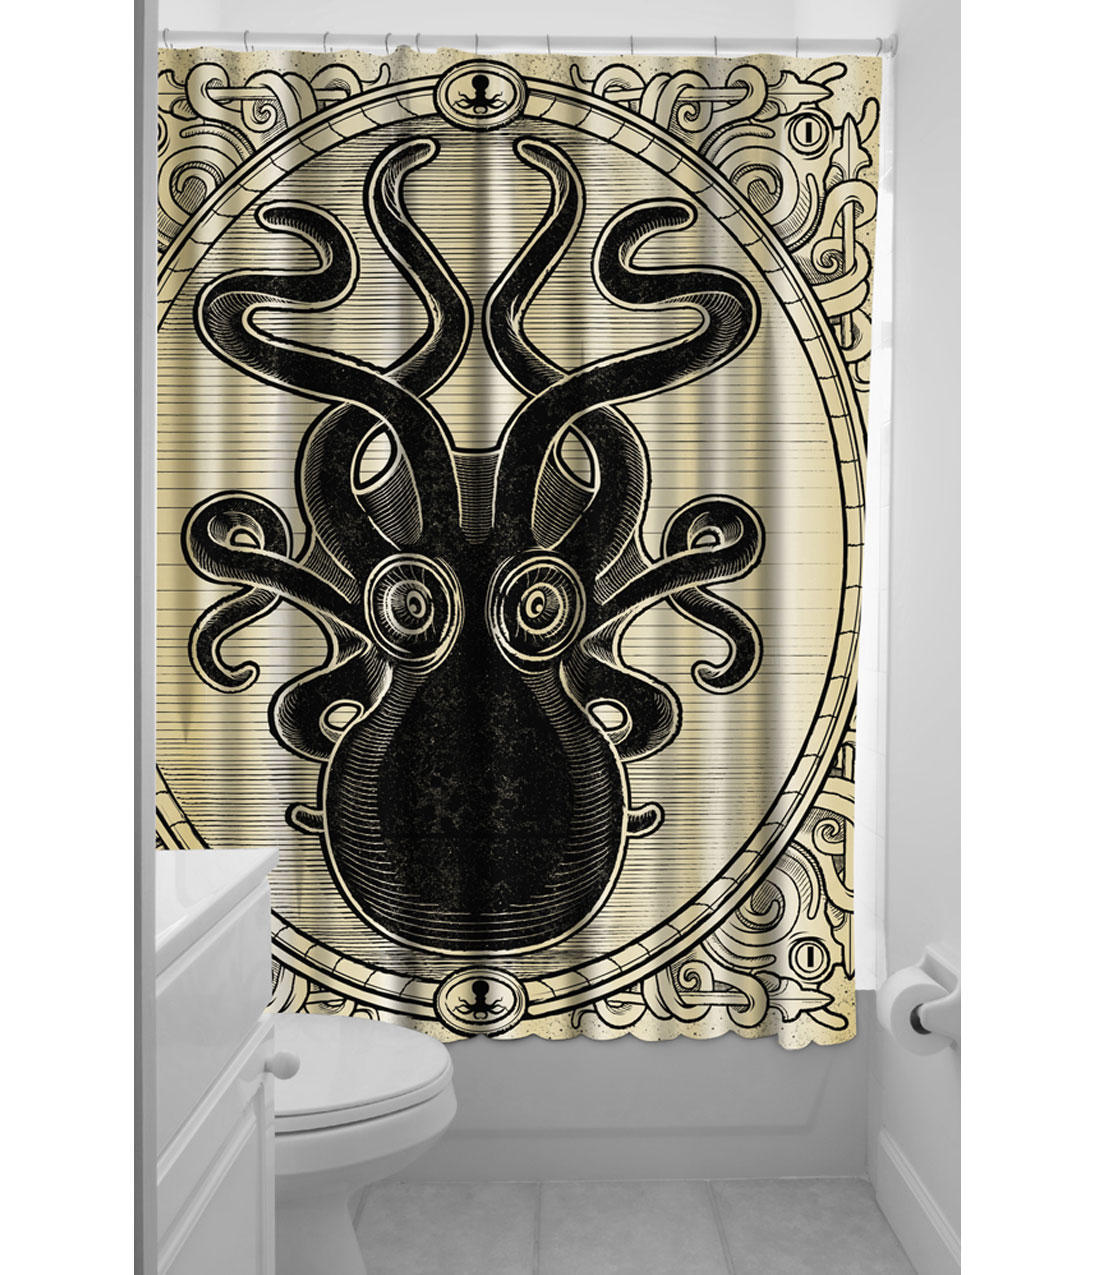 Black toile shower curtain - Cream Black Kraken Up Shower Curtain From Unique Vintage